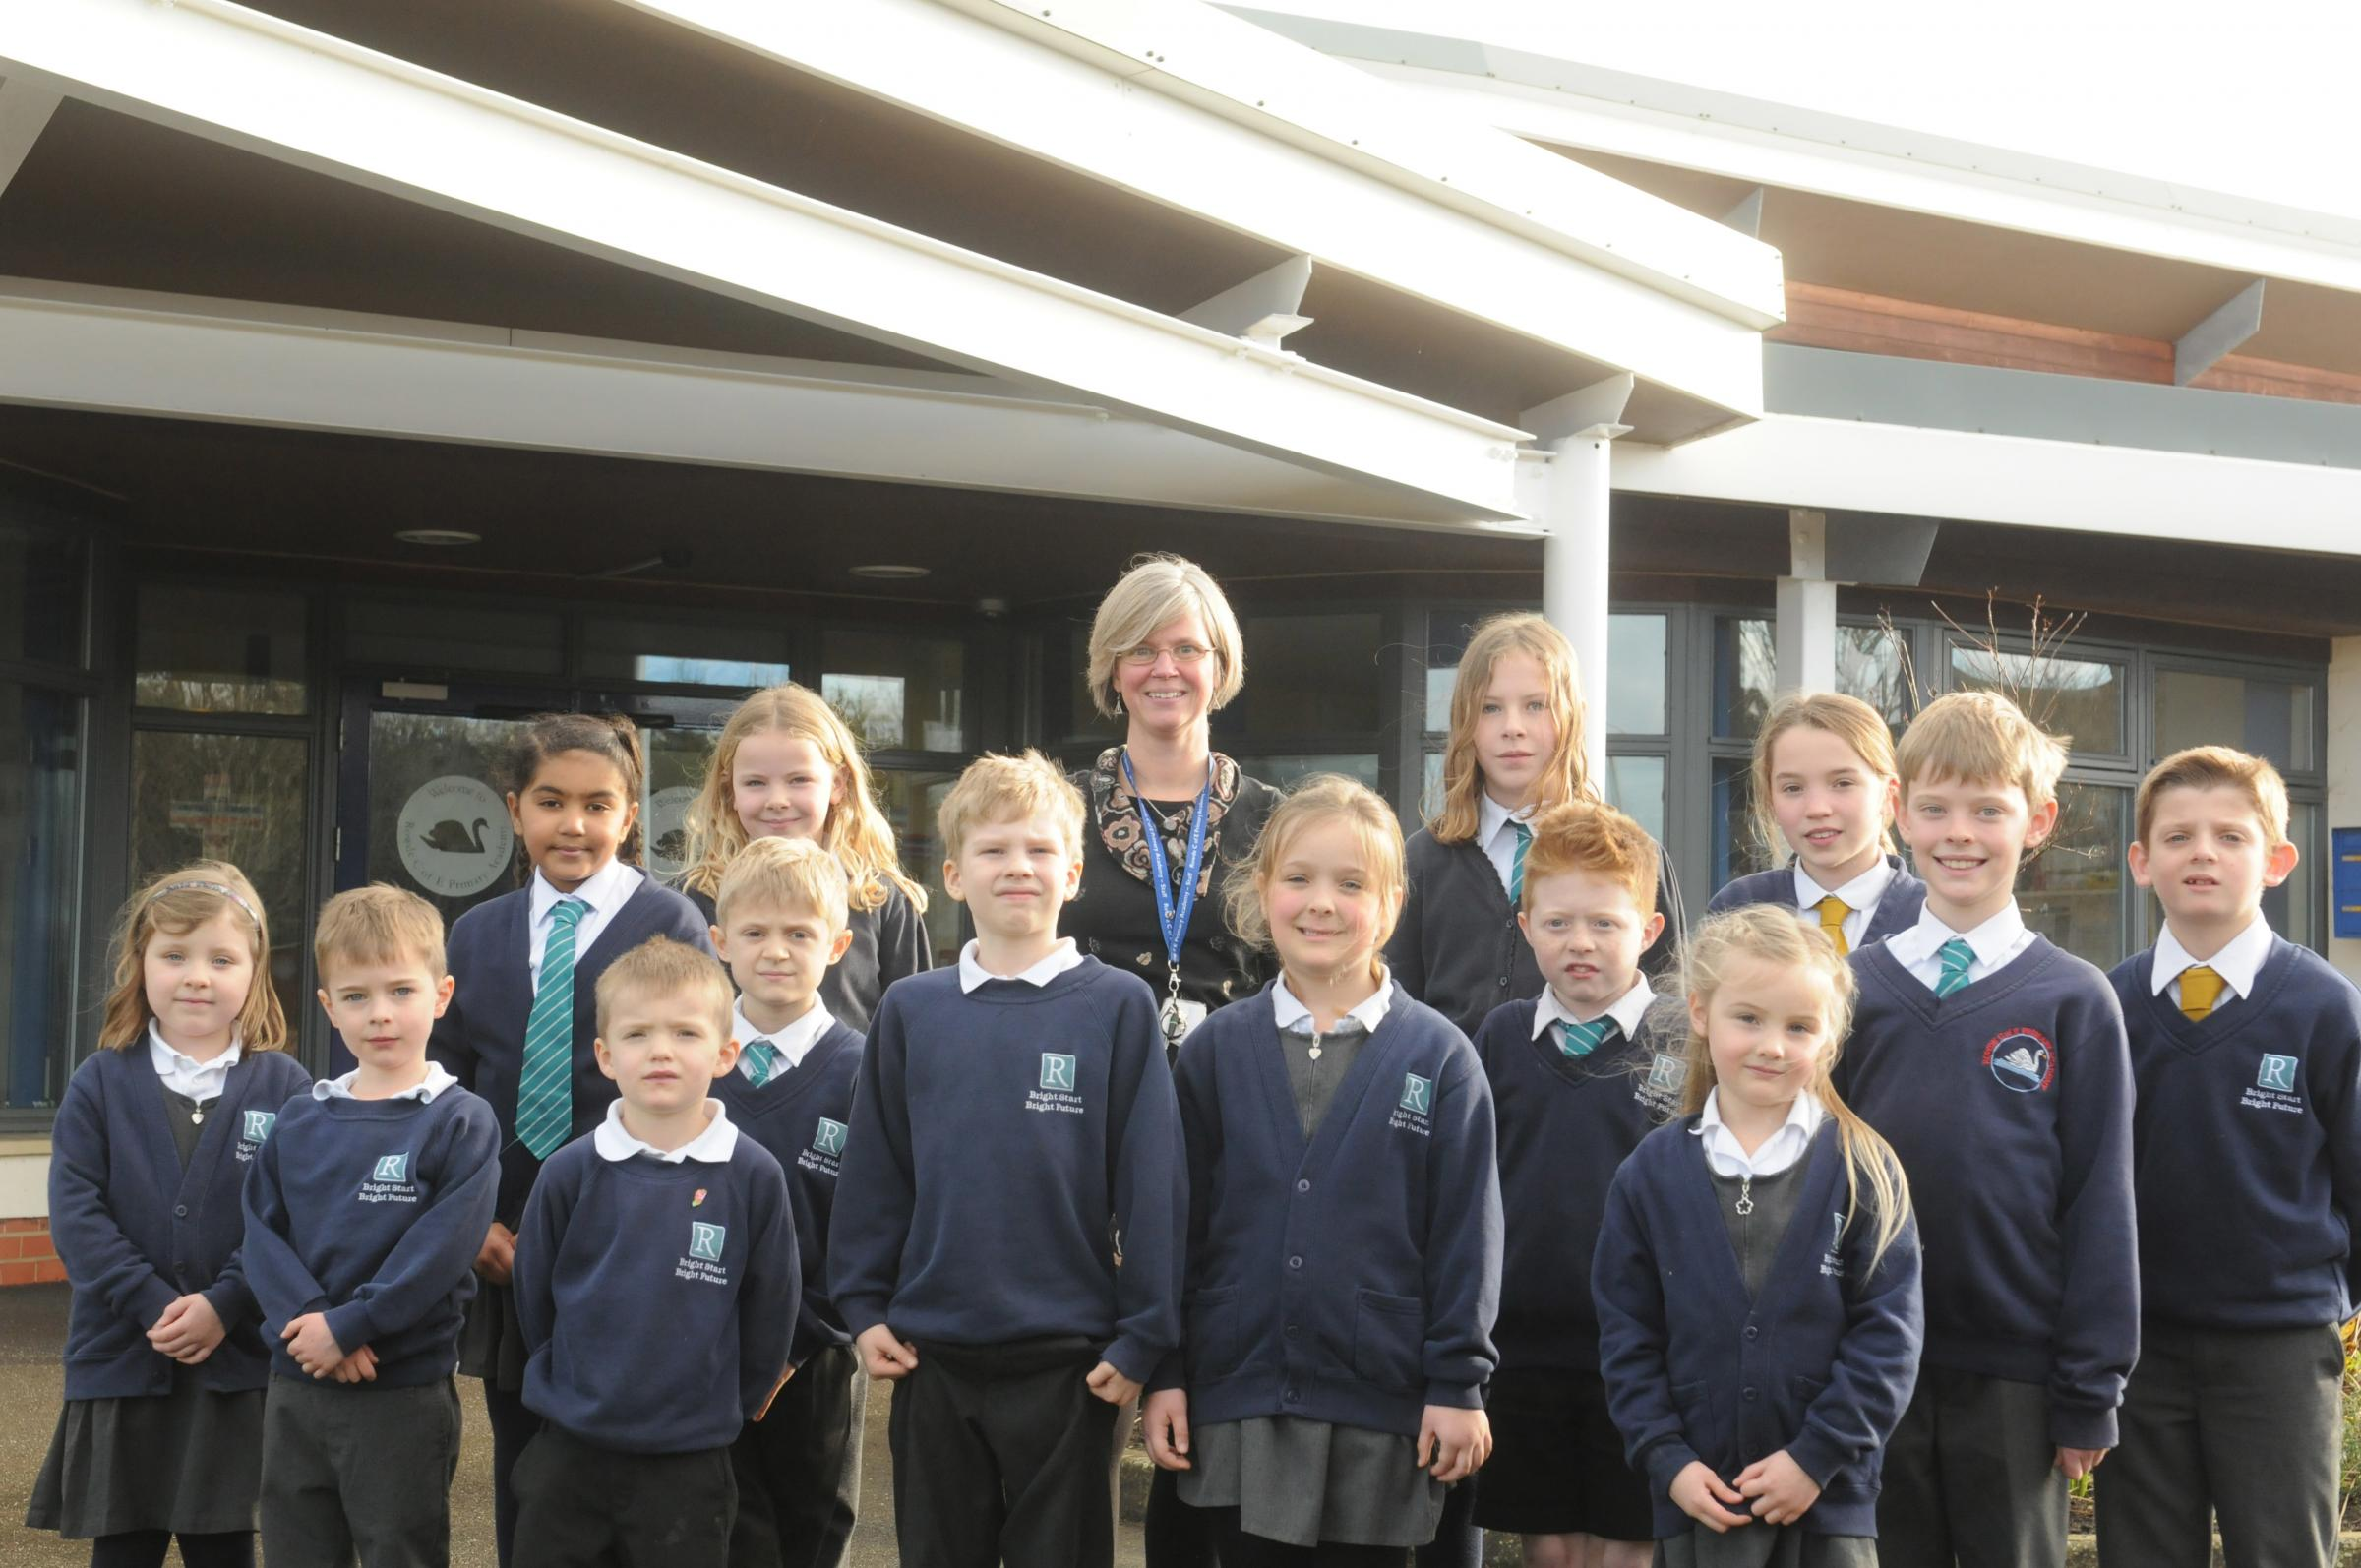 Sue Hulford is the new head teacher at Rowde CofE Academy. Photo: Siobhan Boyle SMB2643/1